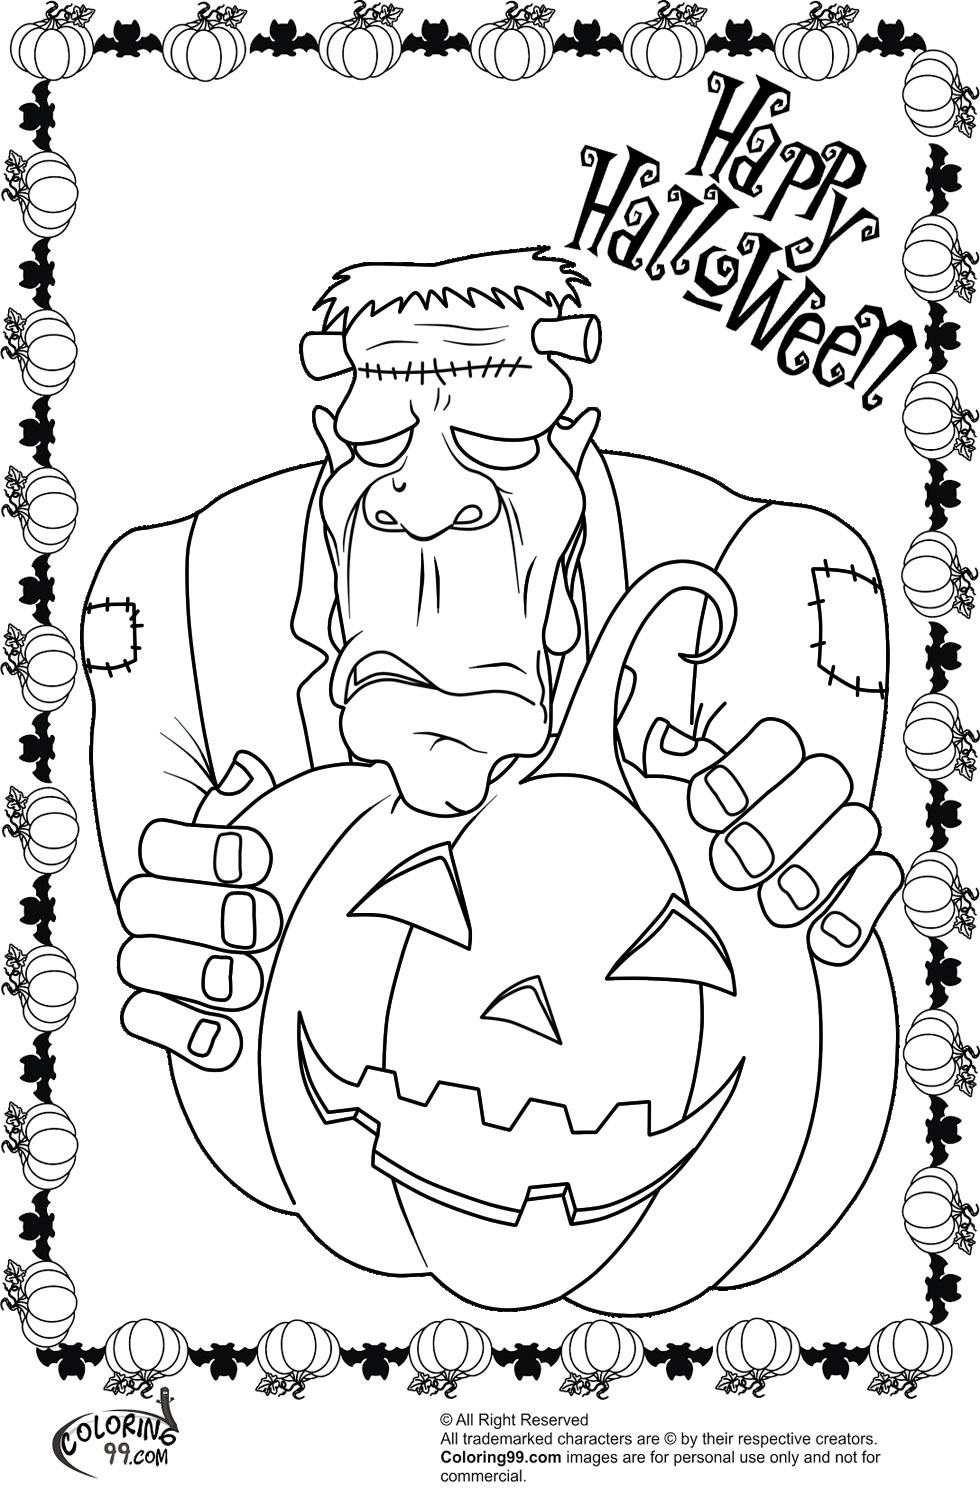 frankenstein coloring book pages desenhos para colorir frankenstein coloring pages book frankenstein